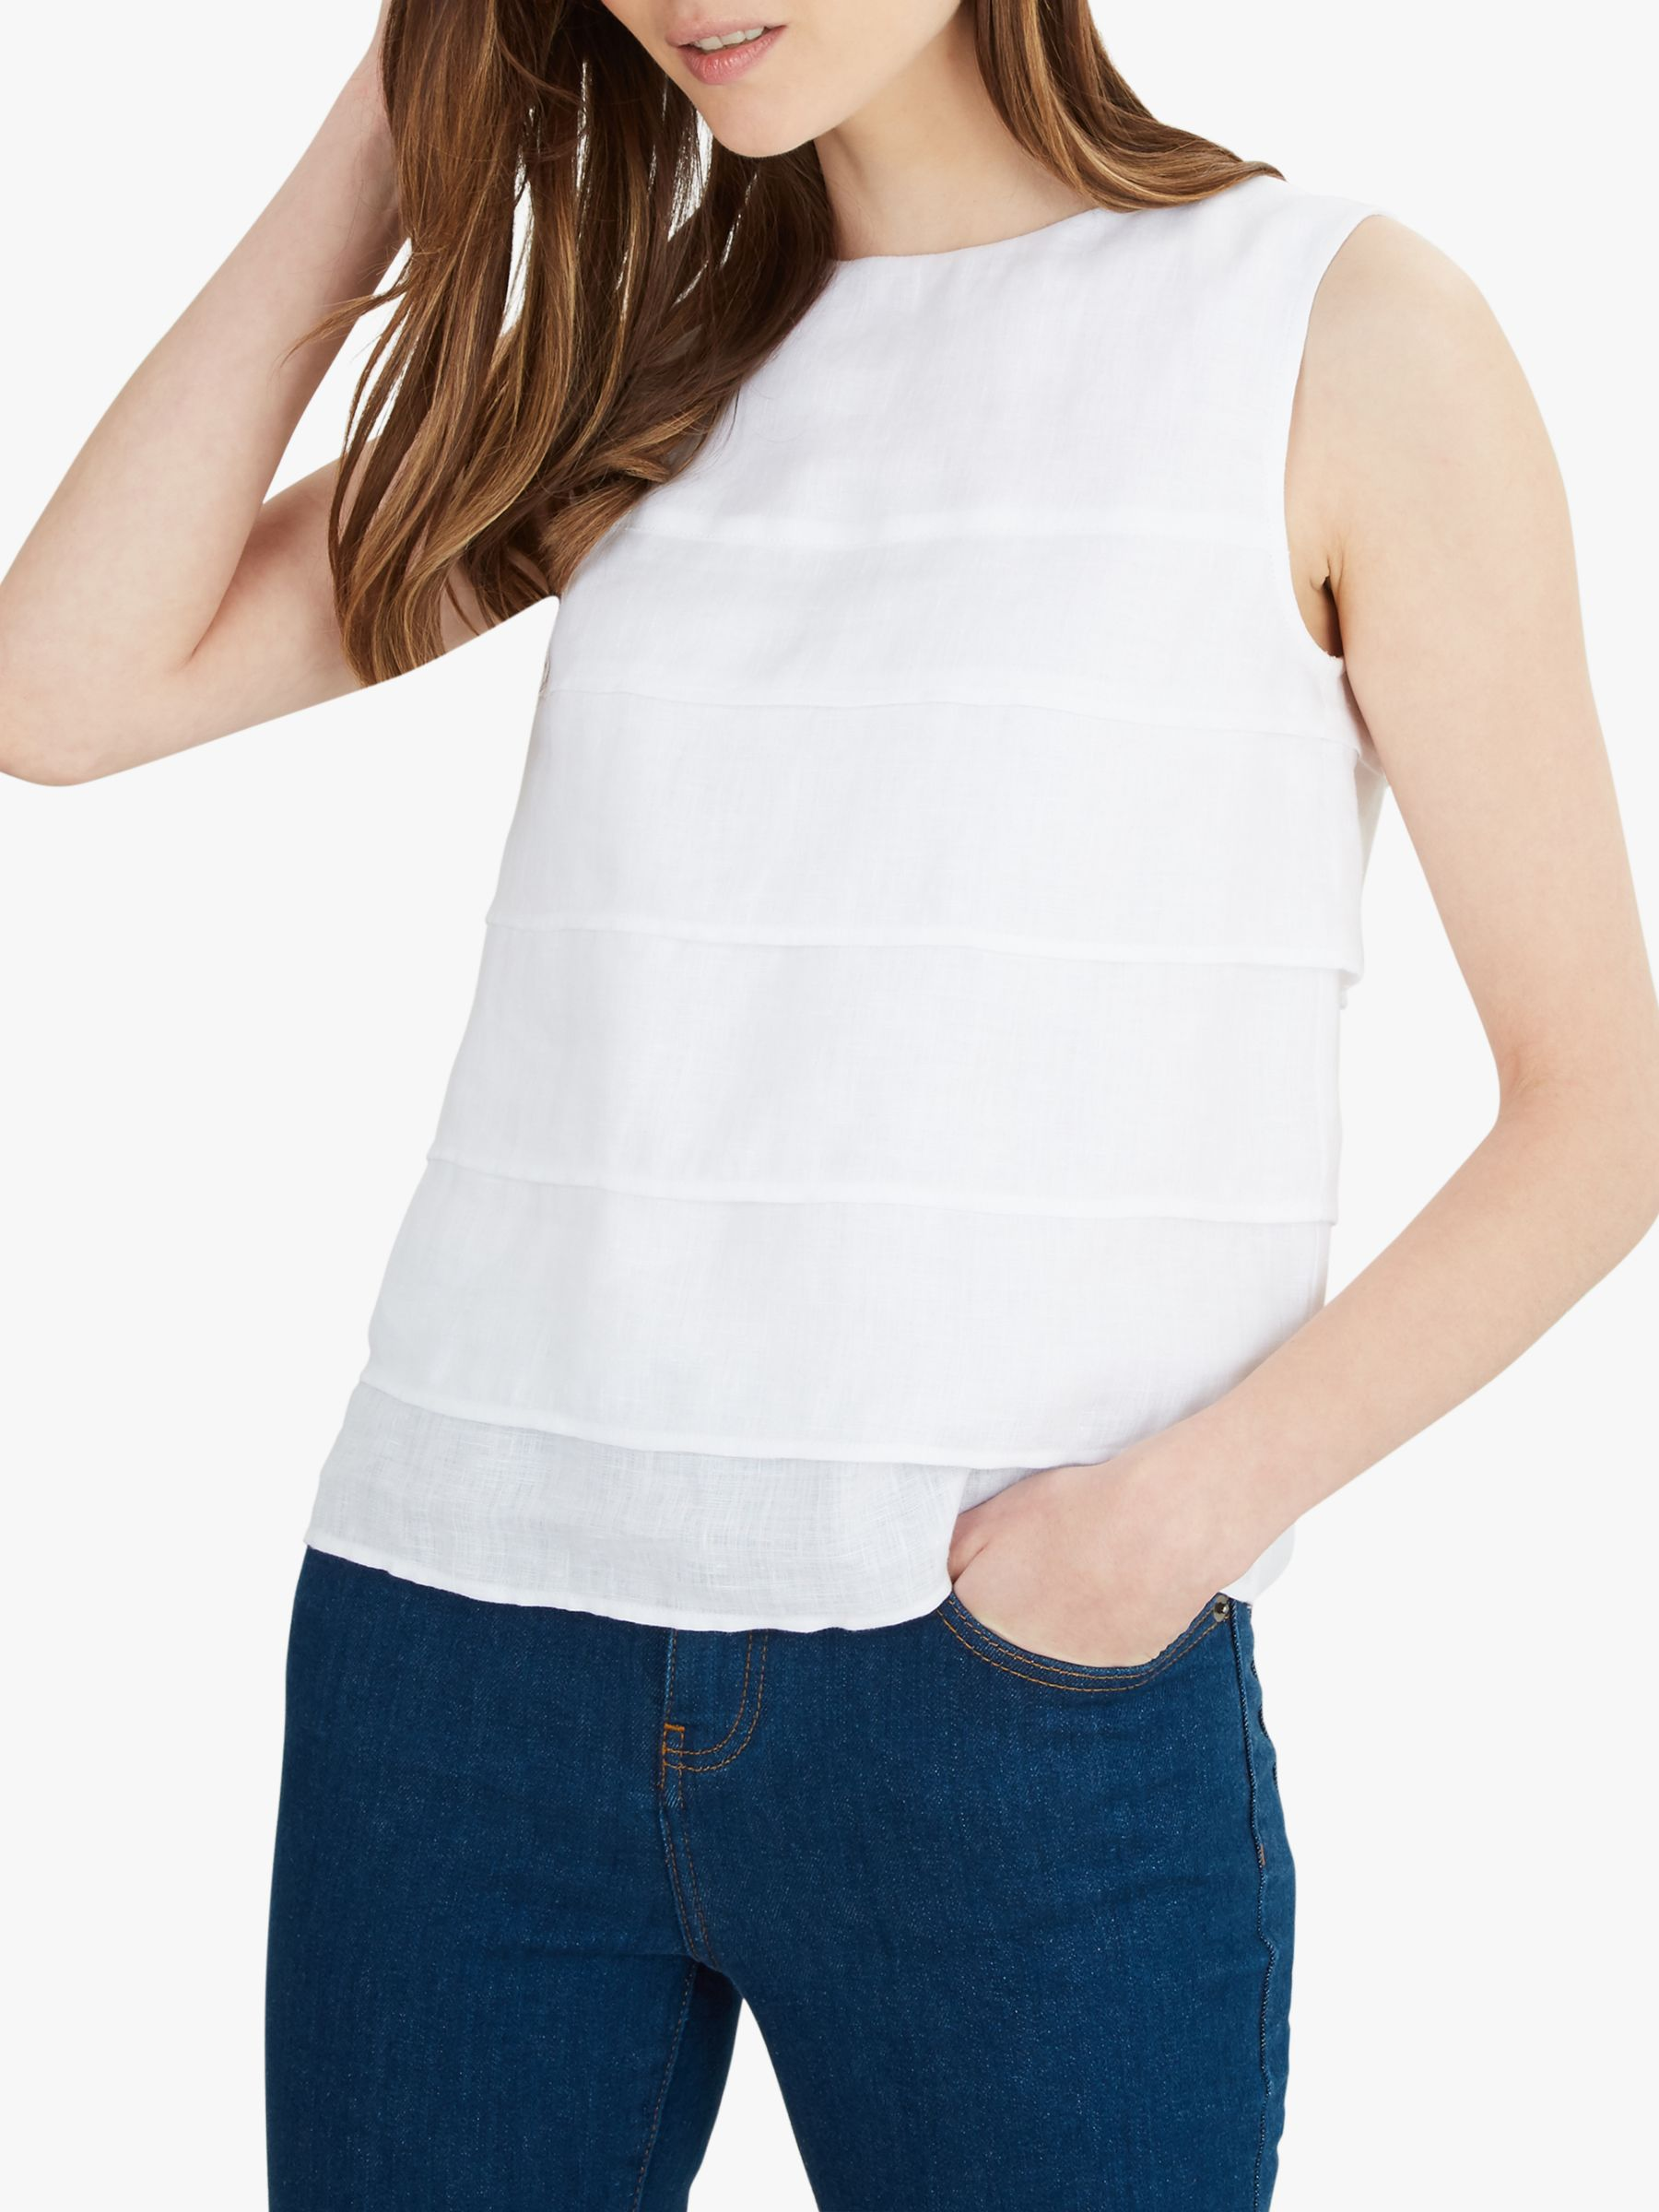 Jaeger Jaeger Linen Collarless Top, White